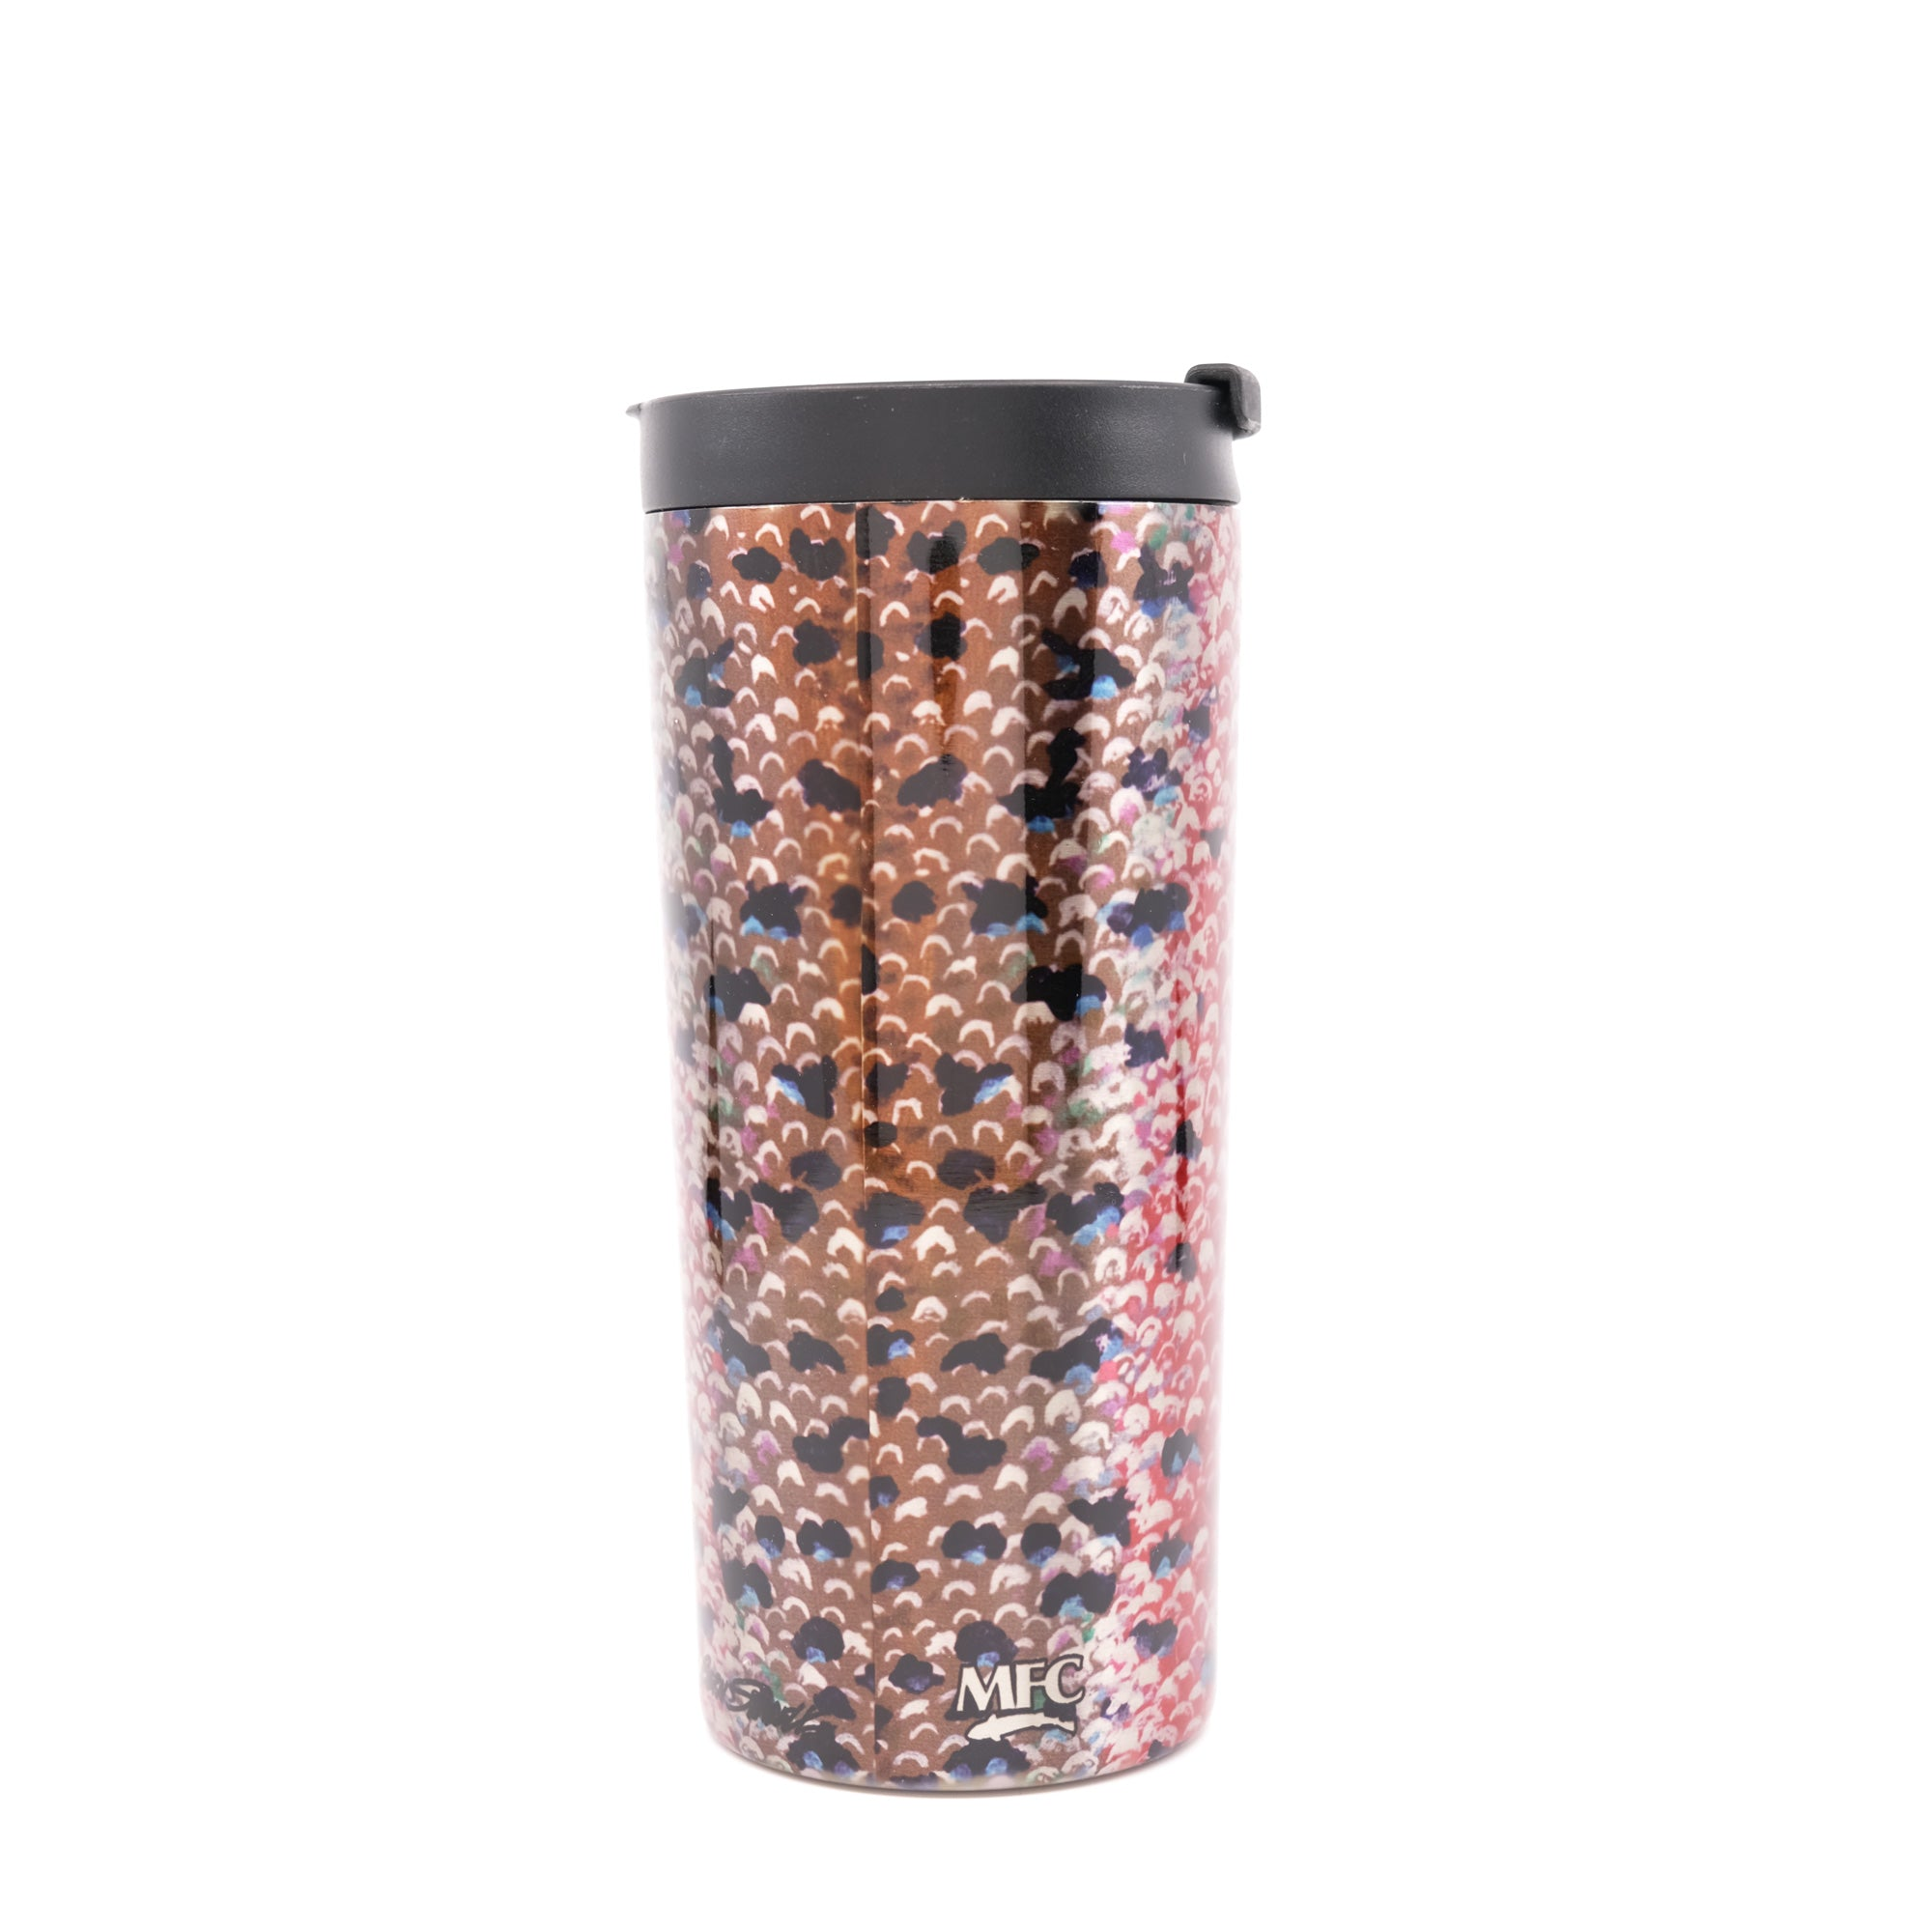 MFC Travel Mug - Sundell's Rainbow Trout Skin